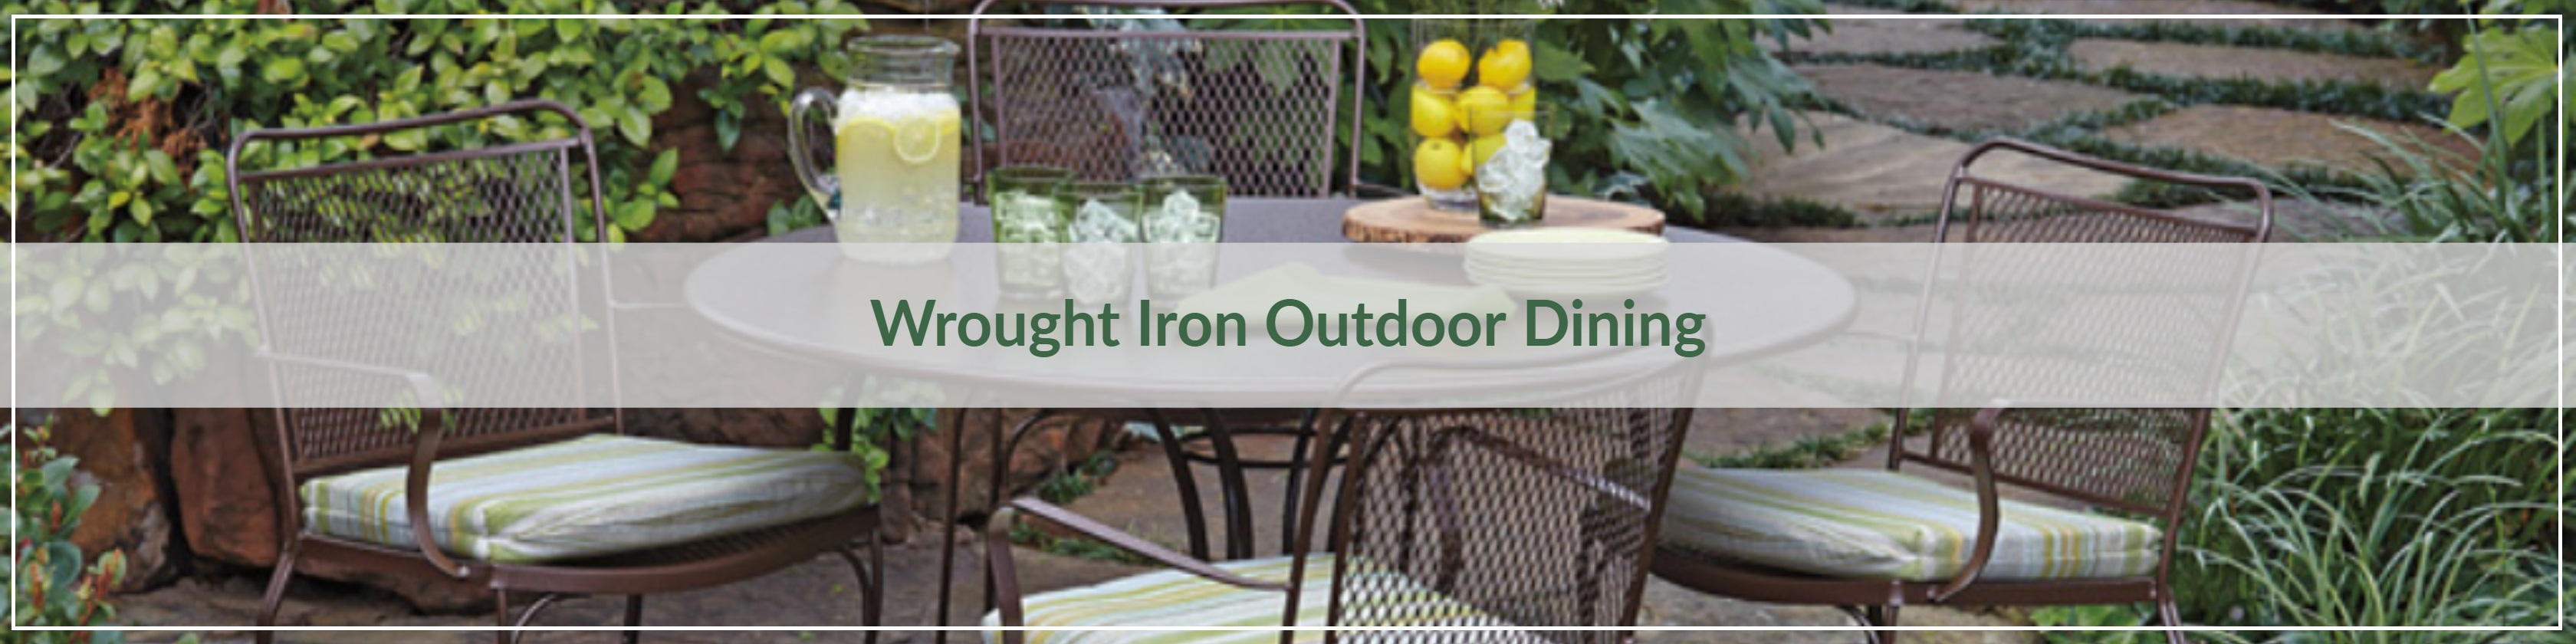 Wrought Iron Outdoor Dining